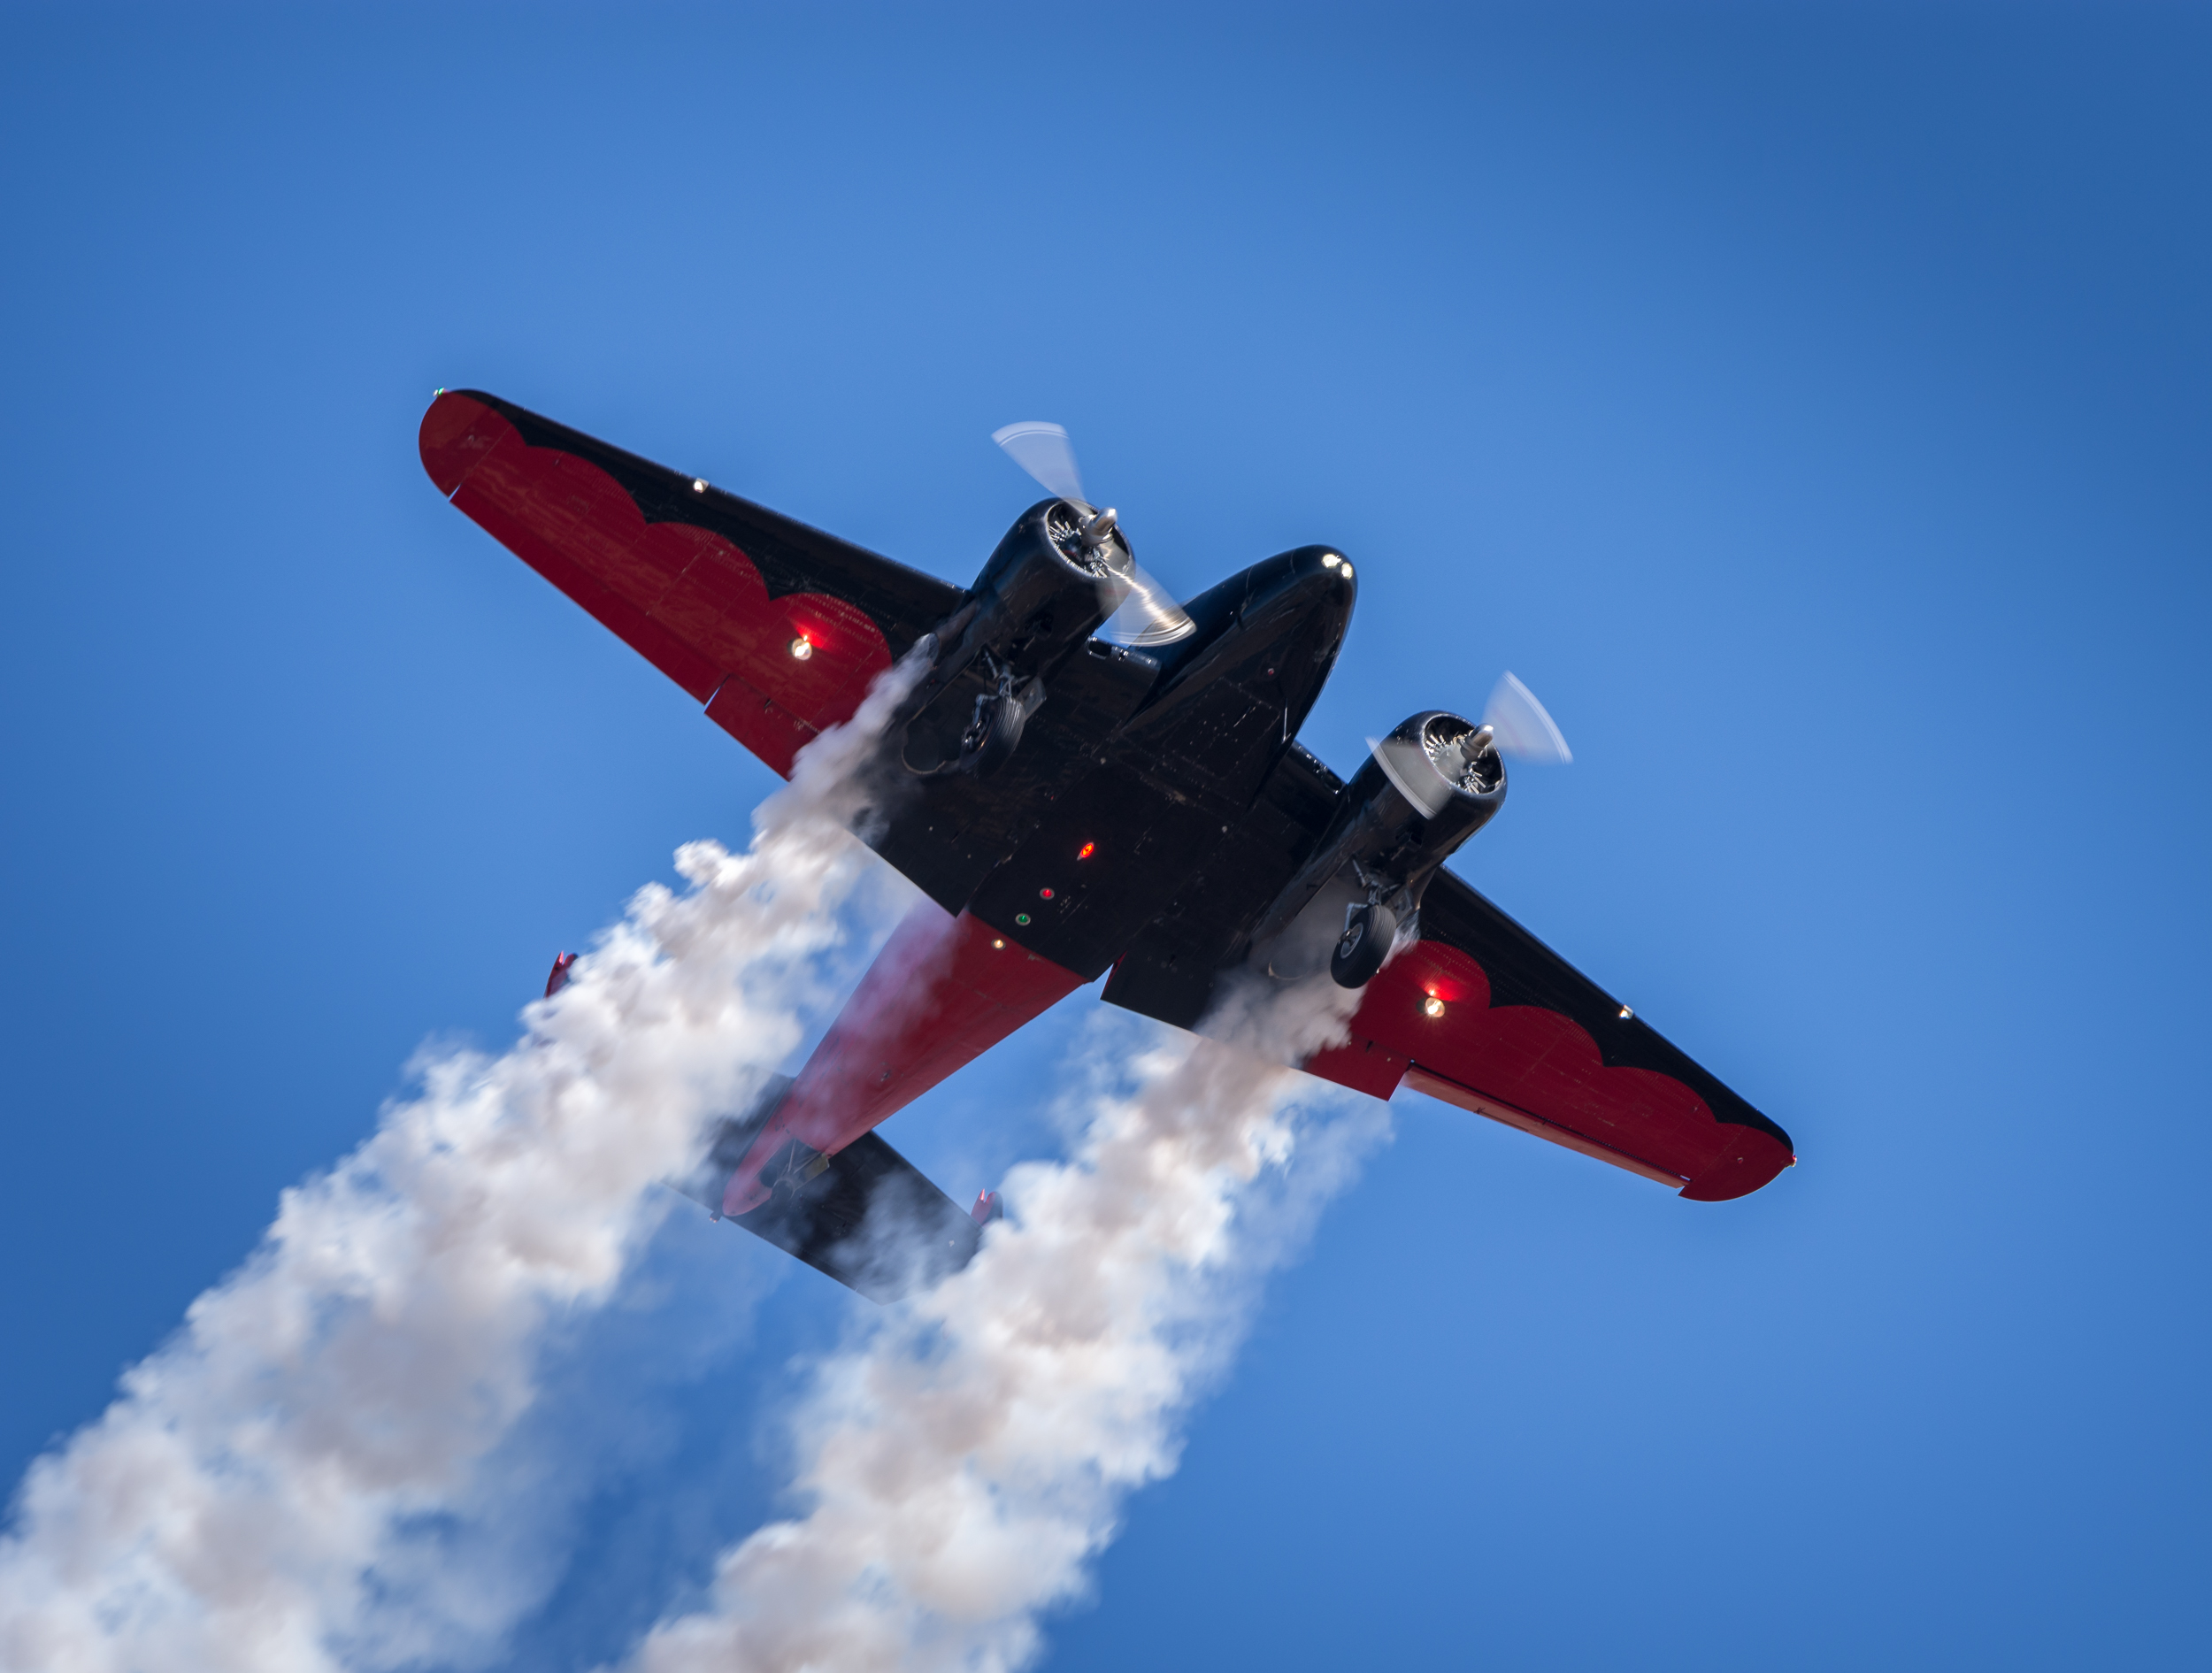 Matt Younkin, in his Twin Beech 18, performs during the 2015 California Capital Airshow